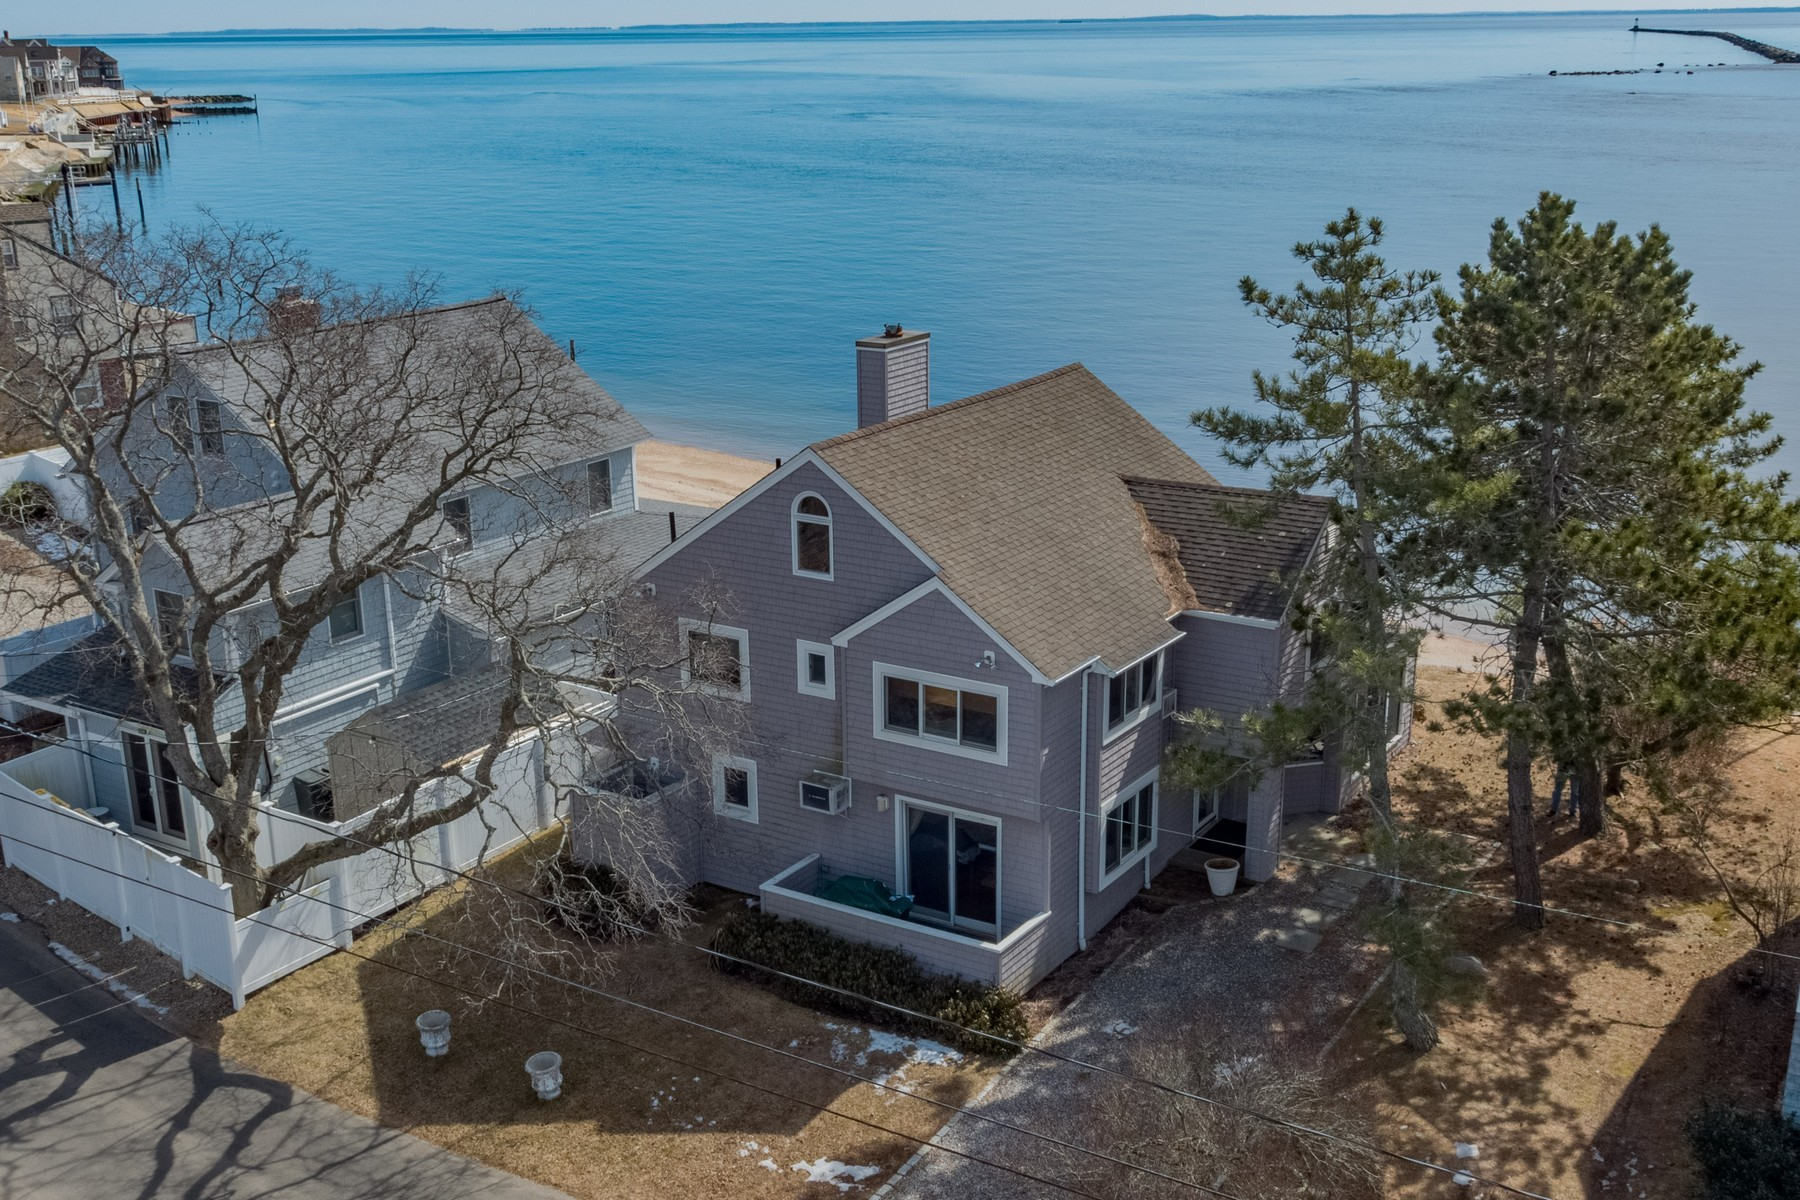 Single Family Homes for Sale at Waterfront Beach Home with Sandy Beach 49 Hammock Road Clinton, Connecticut 06413 United States